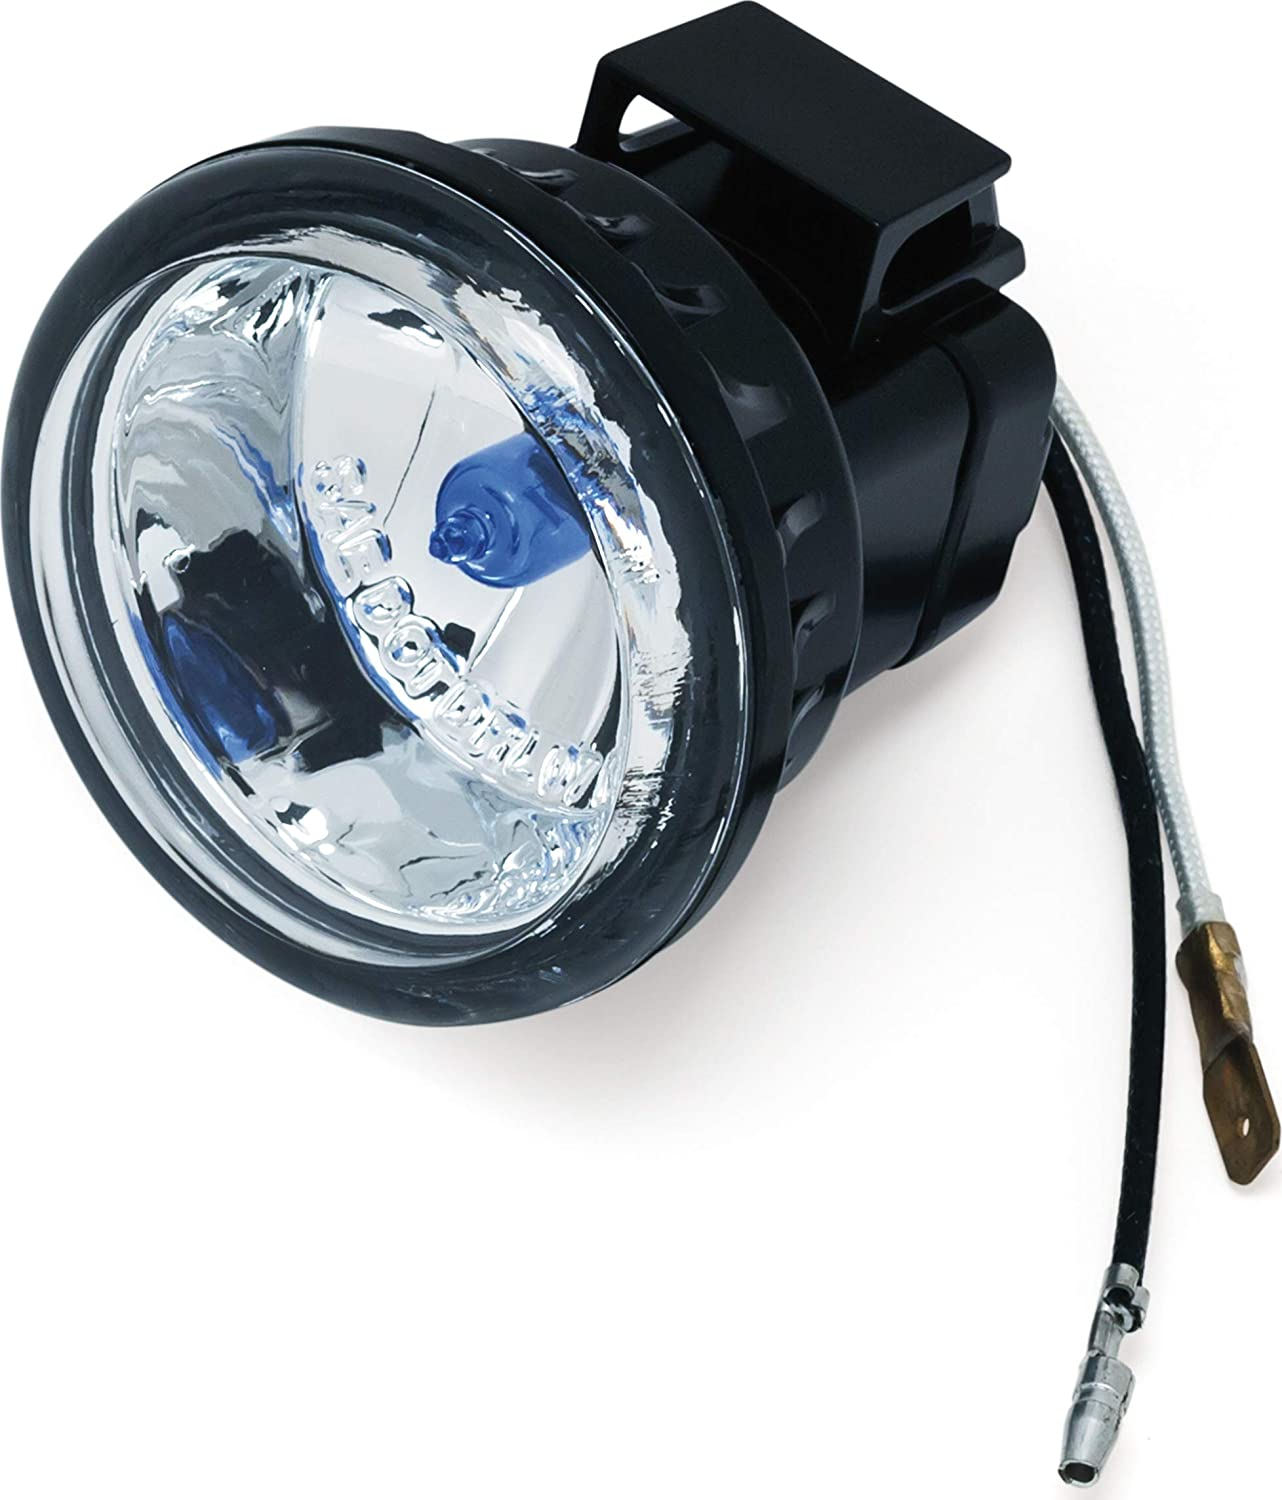 Kuryakyn 5083 Motorcycle Lighting Replacement Lamp